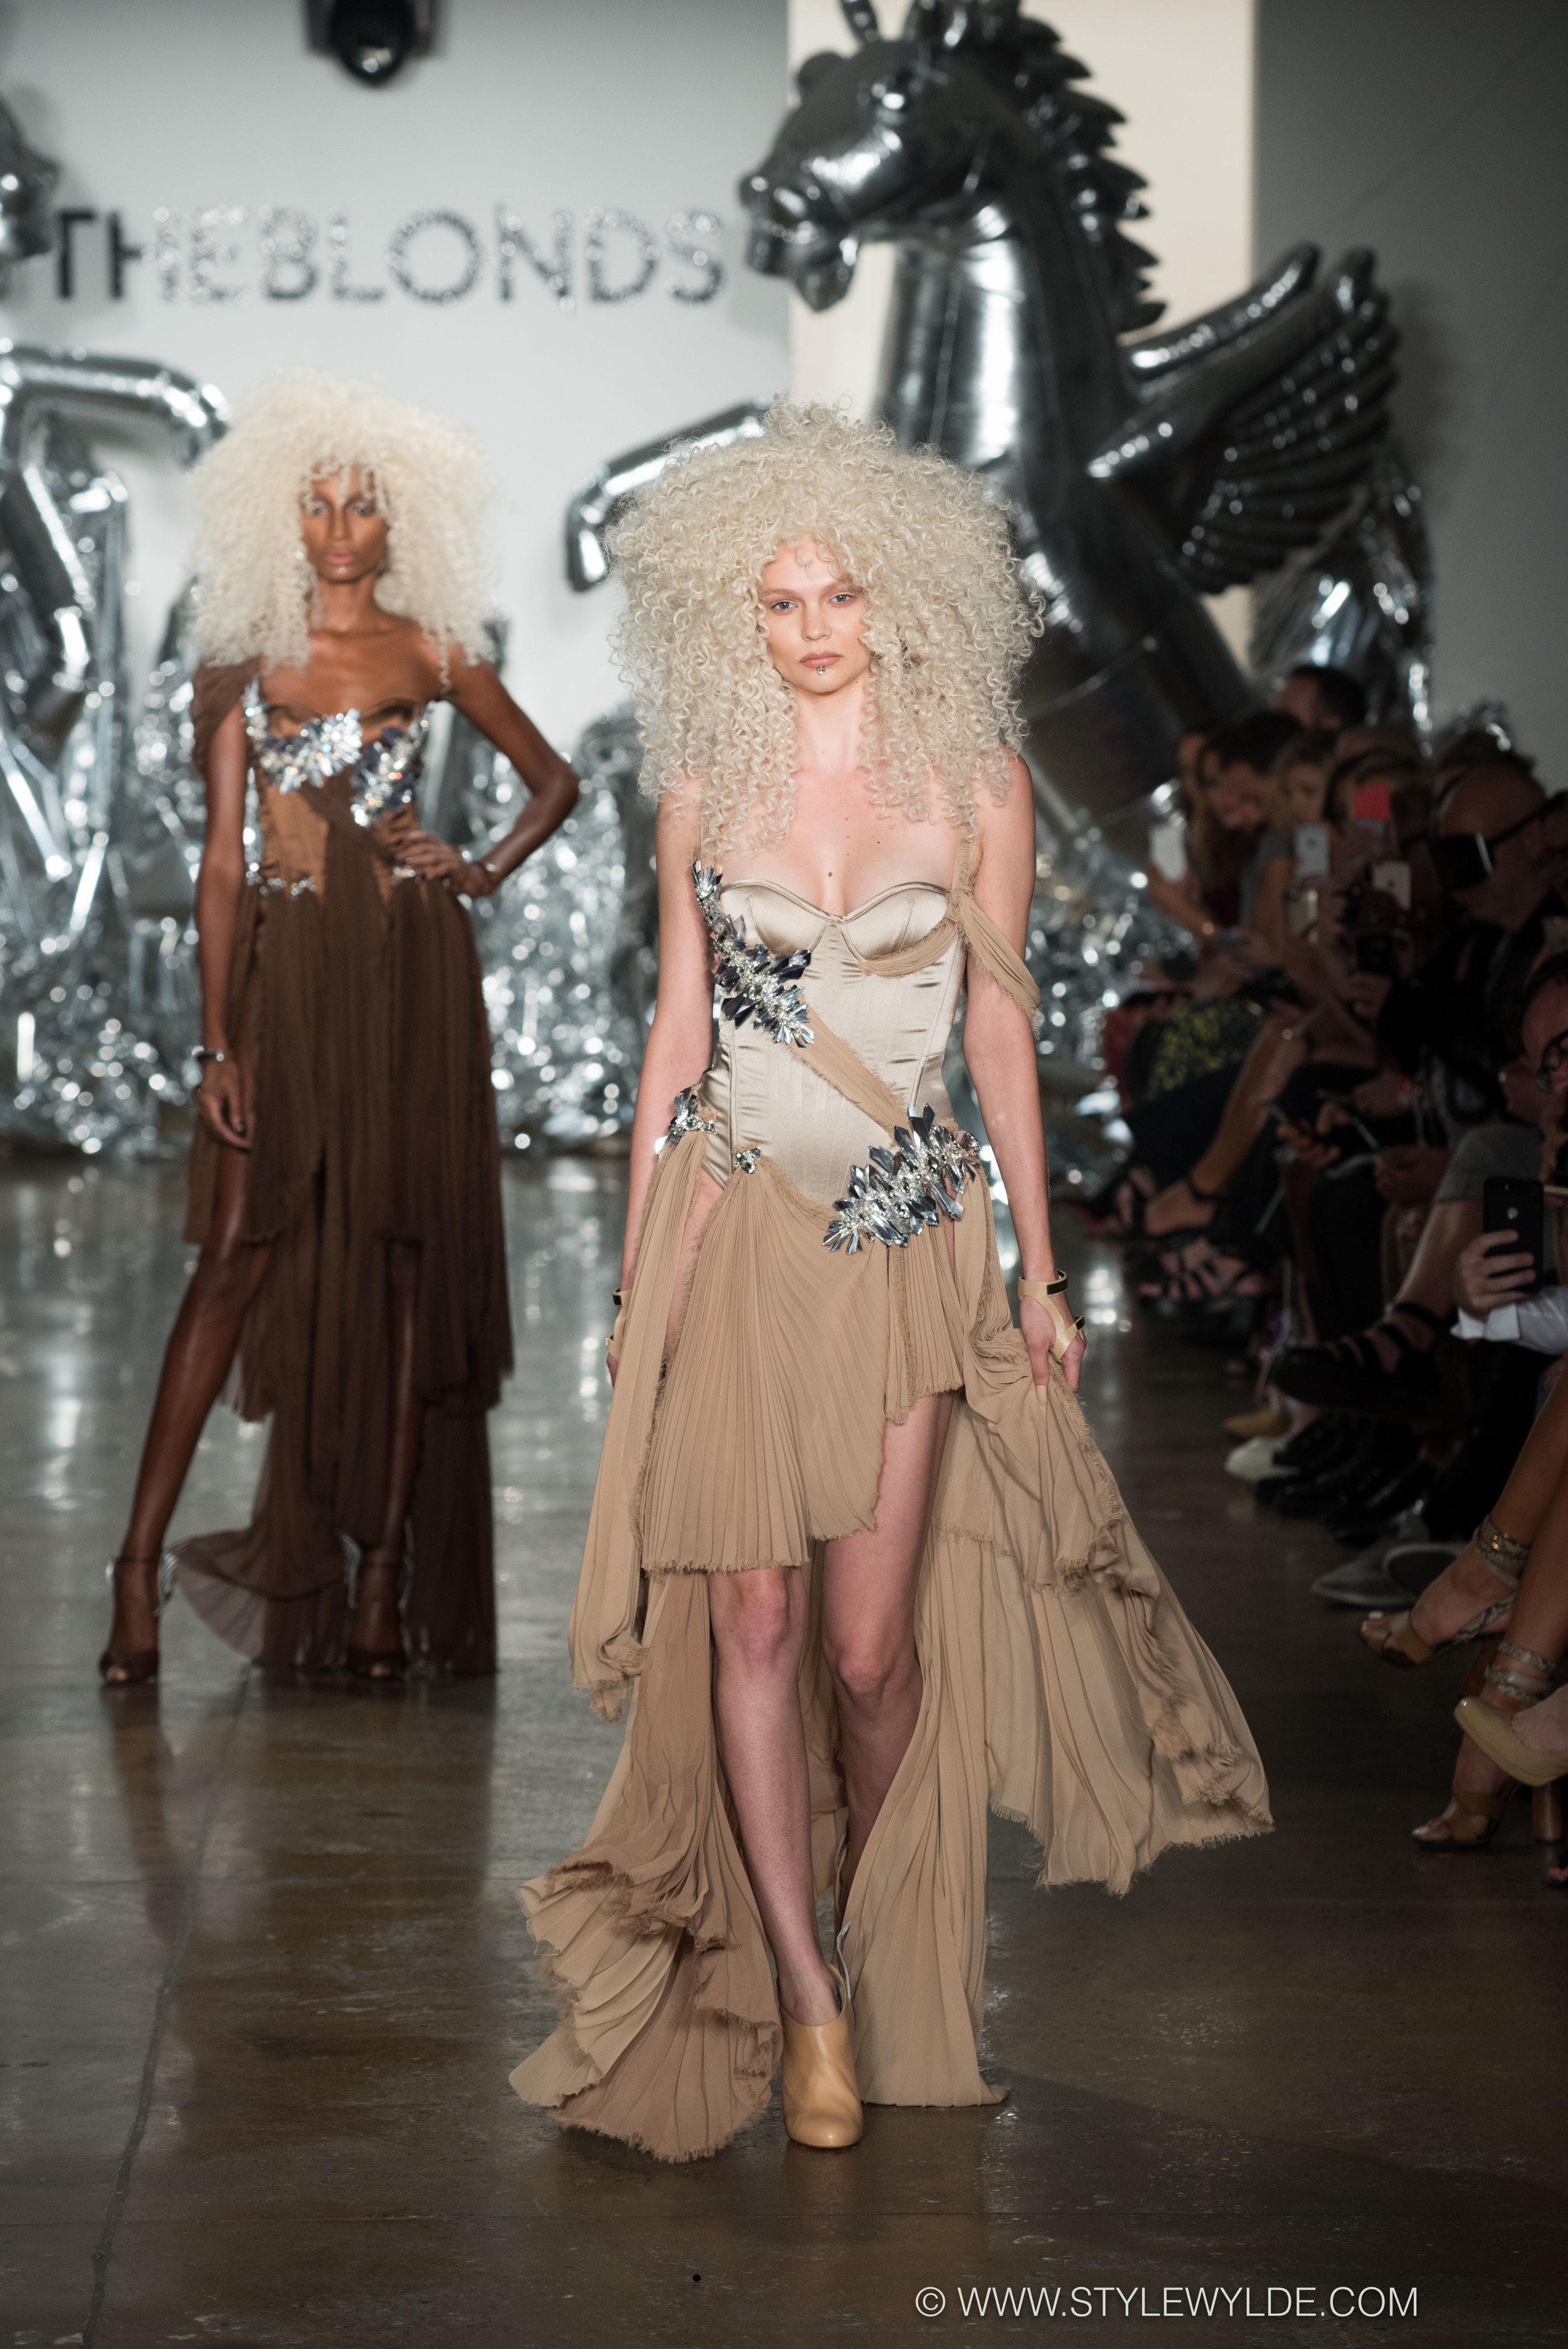 stylewylde-The Blonds SS17-FOH- Edits-9.jpg